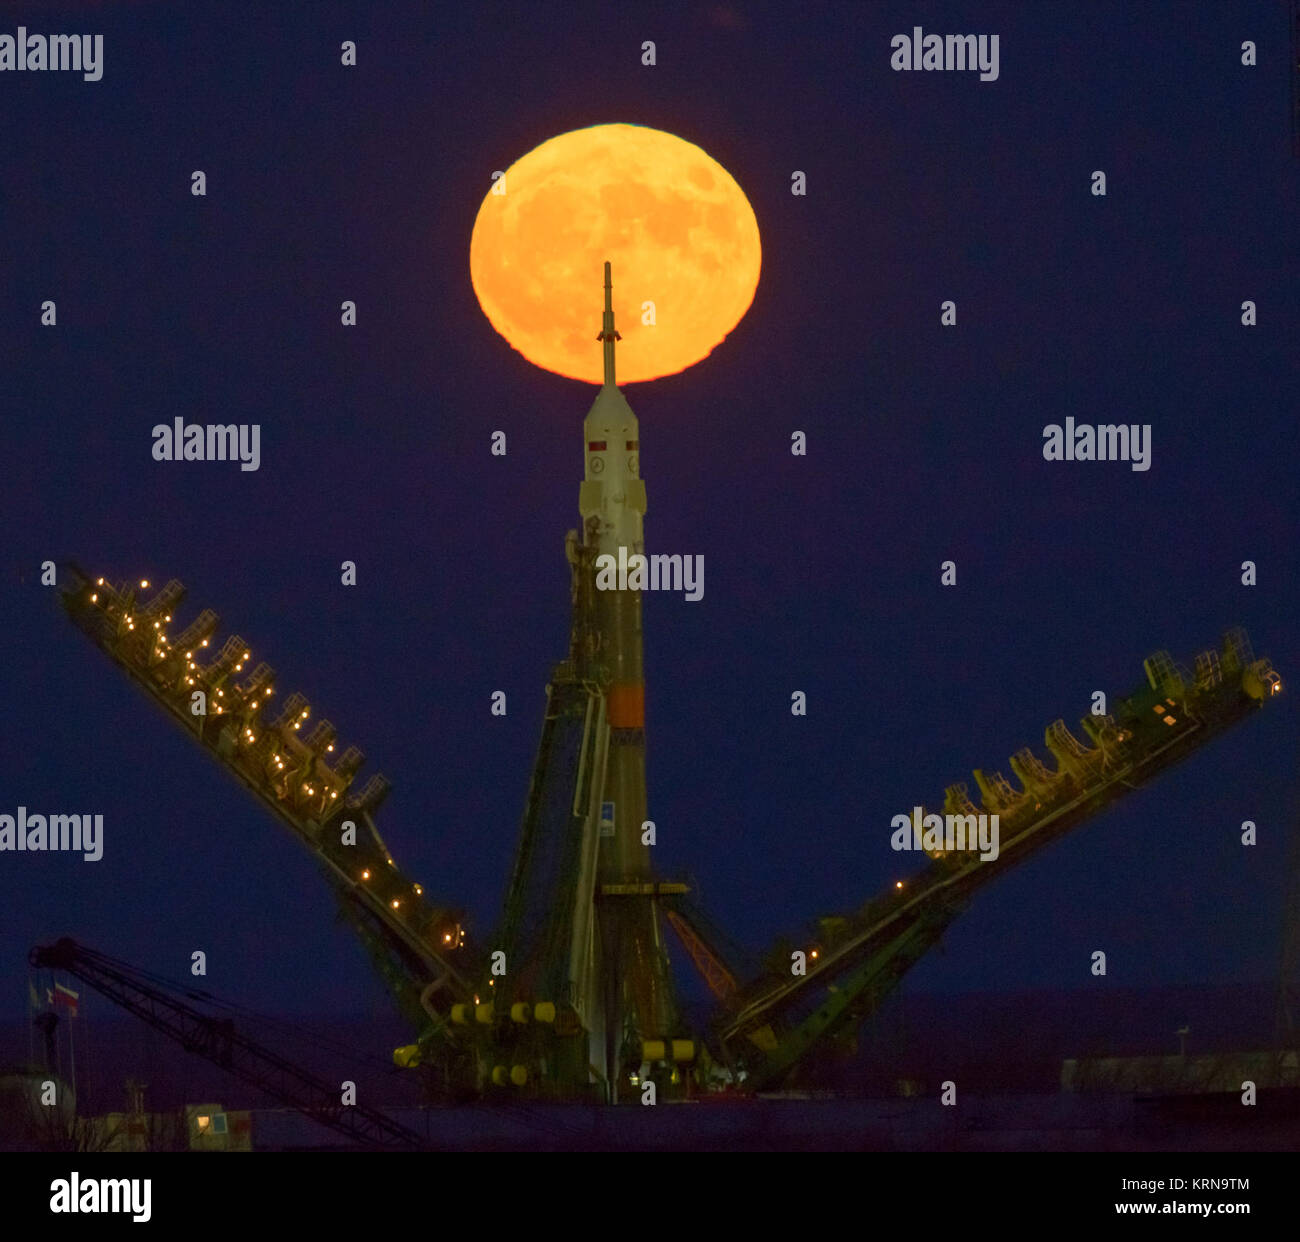 The moon, or supermoon, is seen rising behind the Soyuz rocket at the Baikonur Cosmodrome launch pad in Kazakhstan, - Stock Image